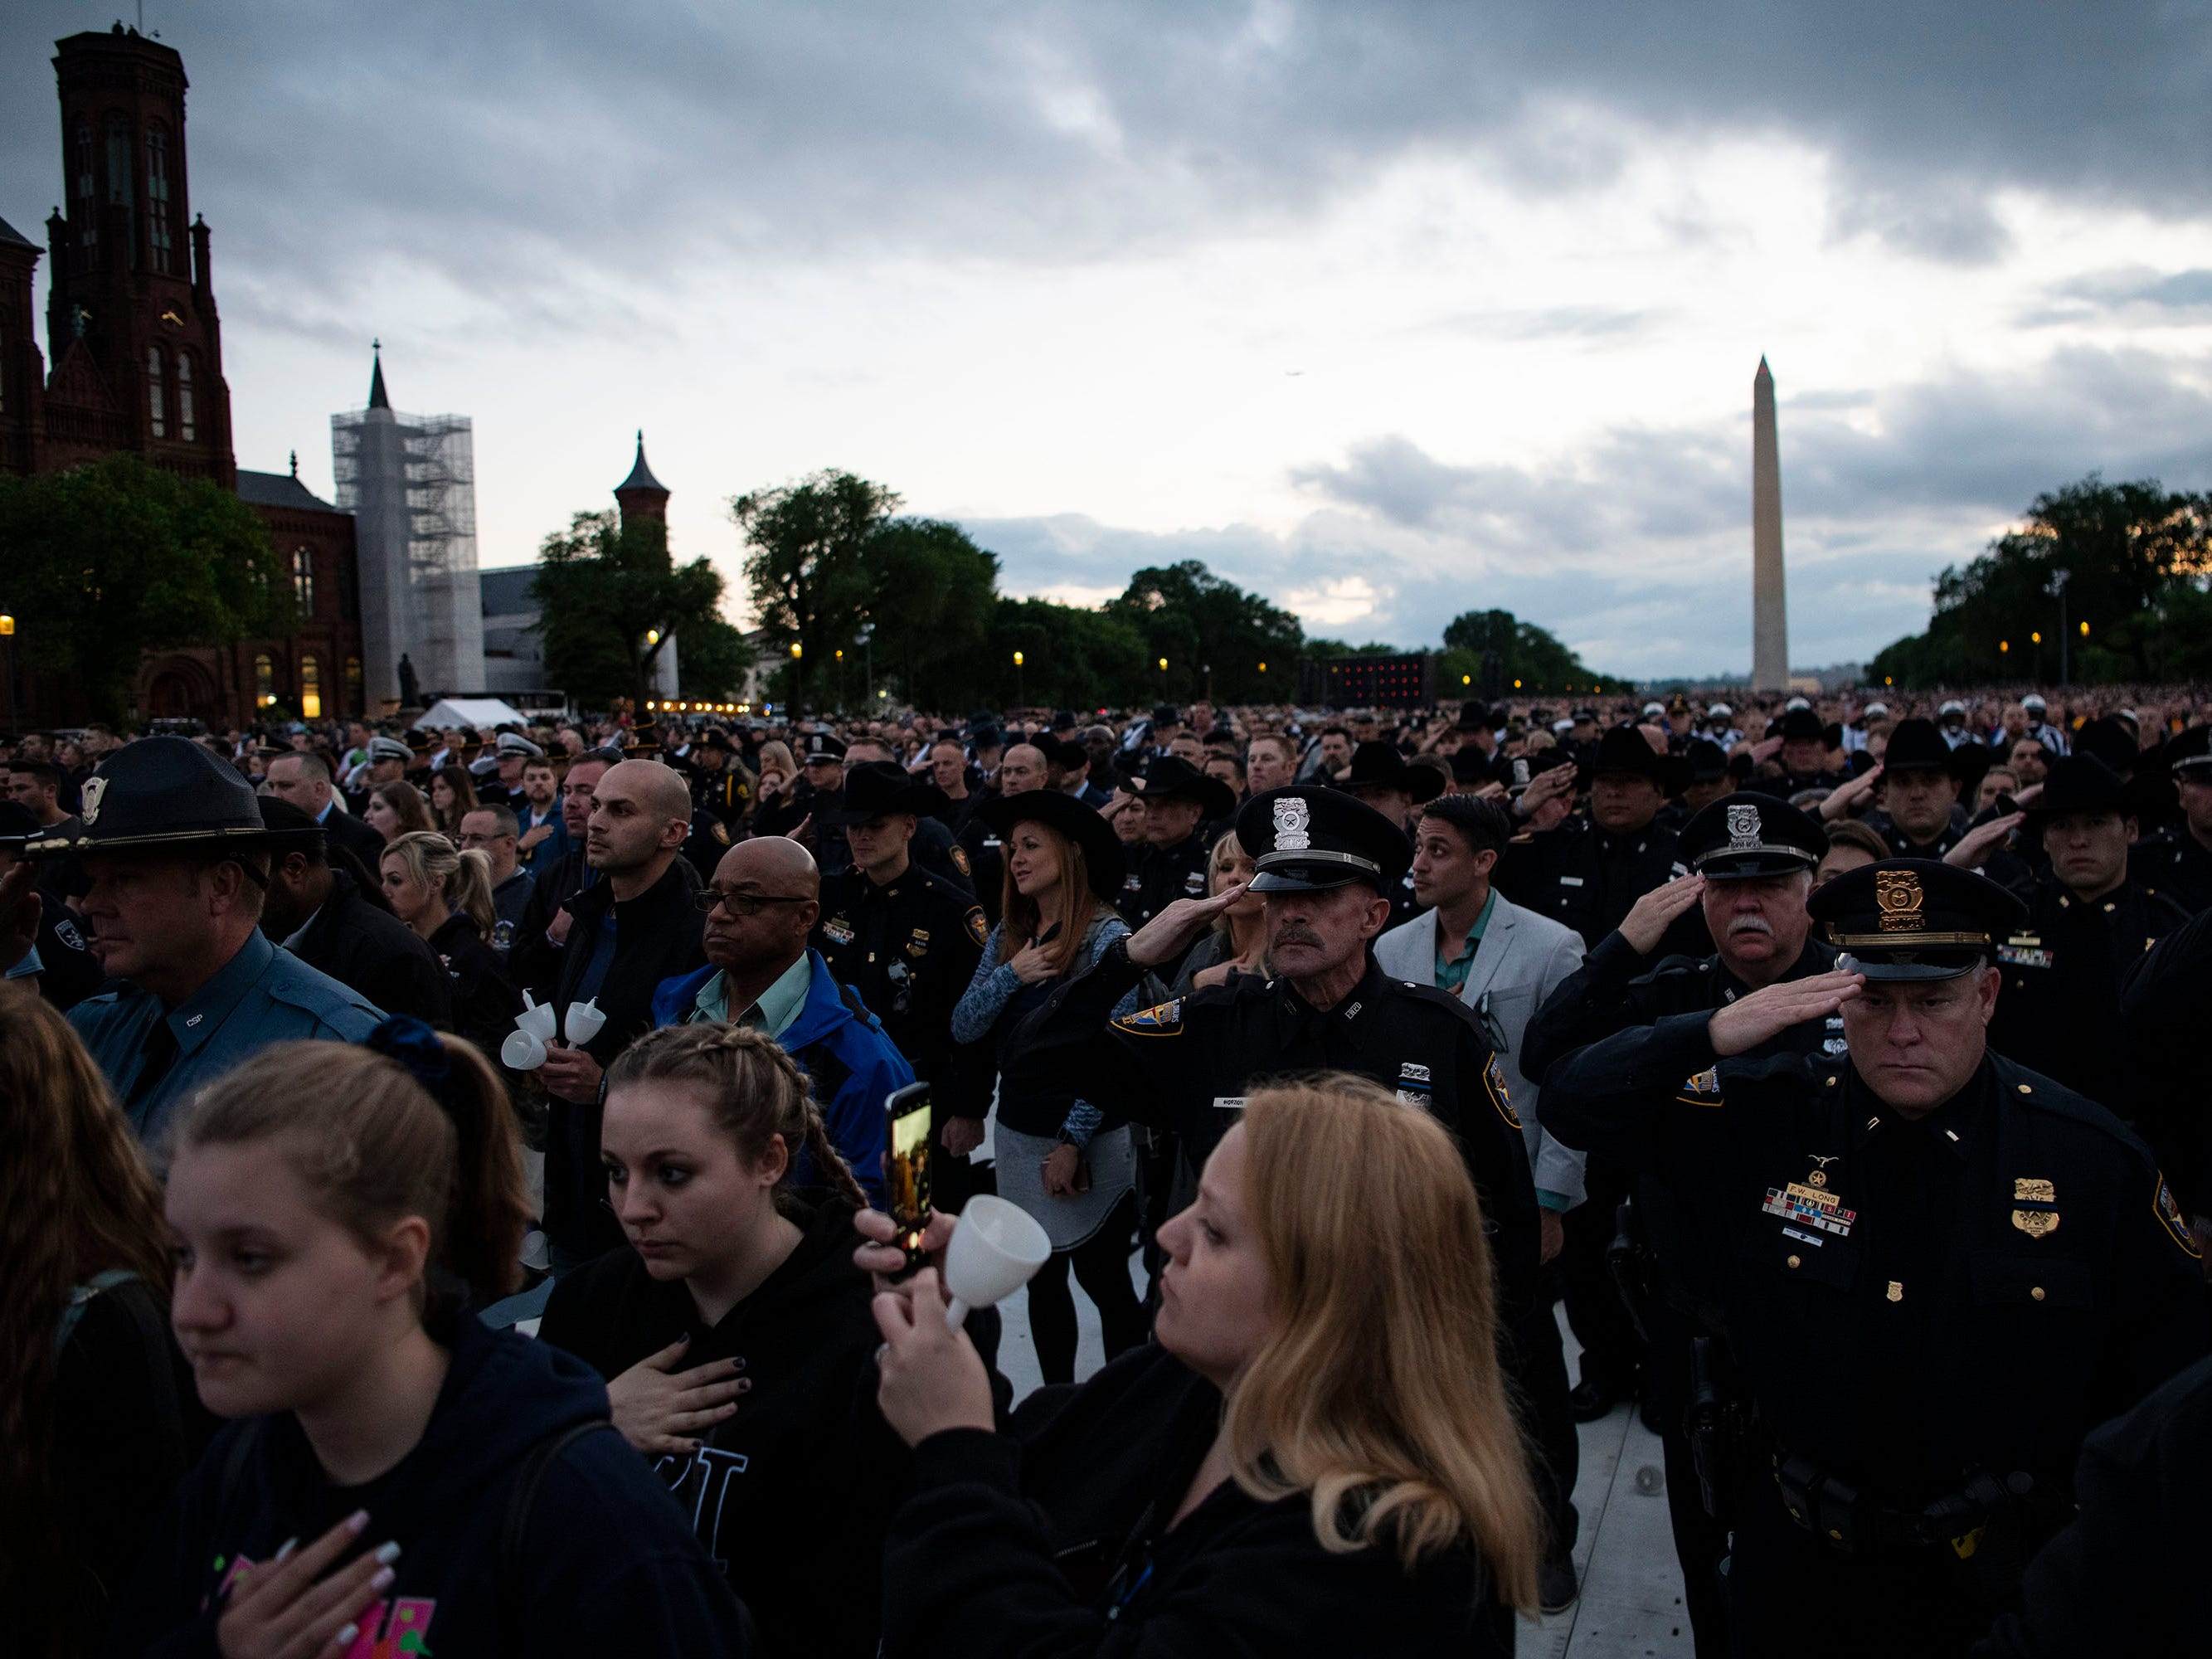 Law enforcement officers from all over the country salute alongside civilians while the National Anthem is sung at a candlelight vigil to honor slain police officers as part of Police Week in the nation's capital.